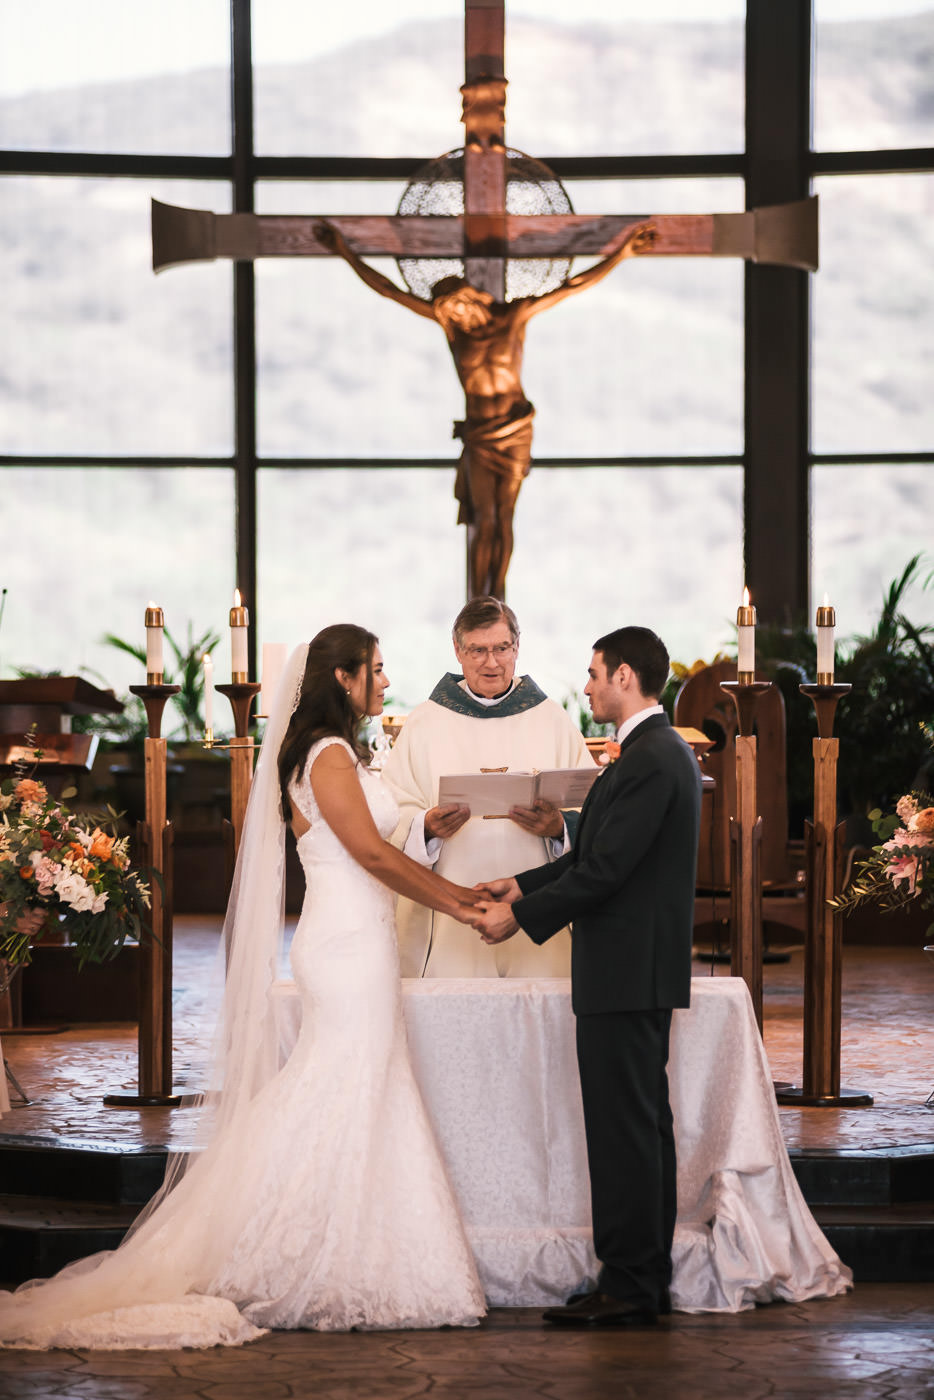 Bride and groom hold hands during the marriage ceremony and say their vows.